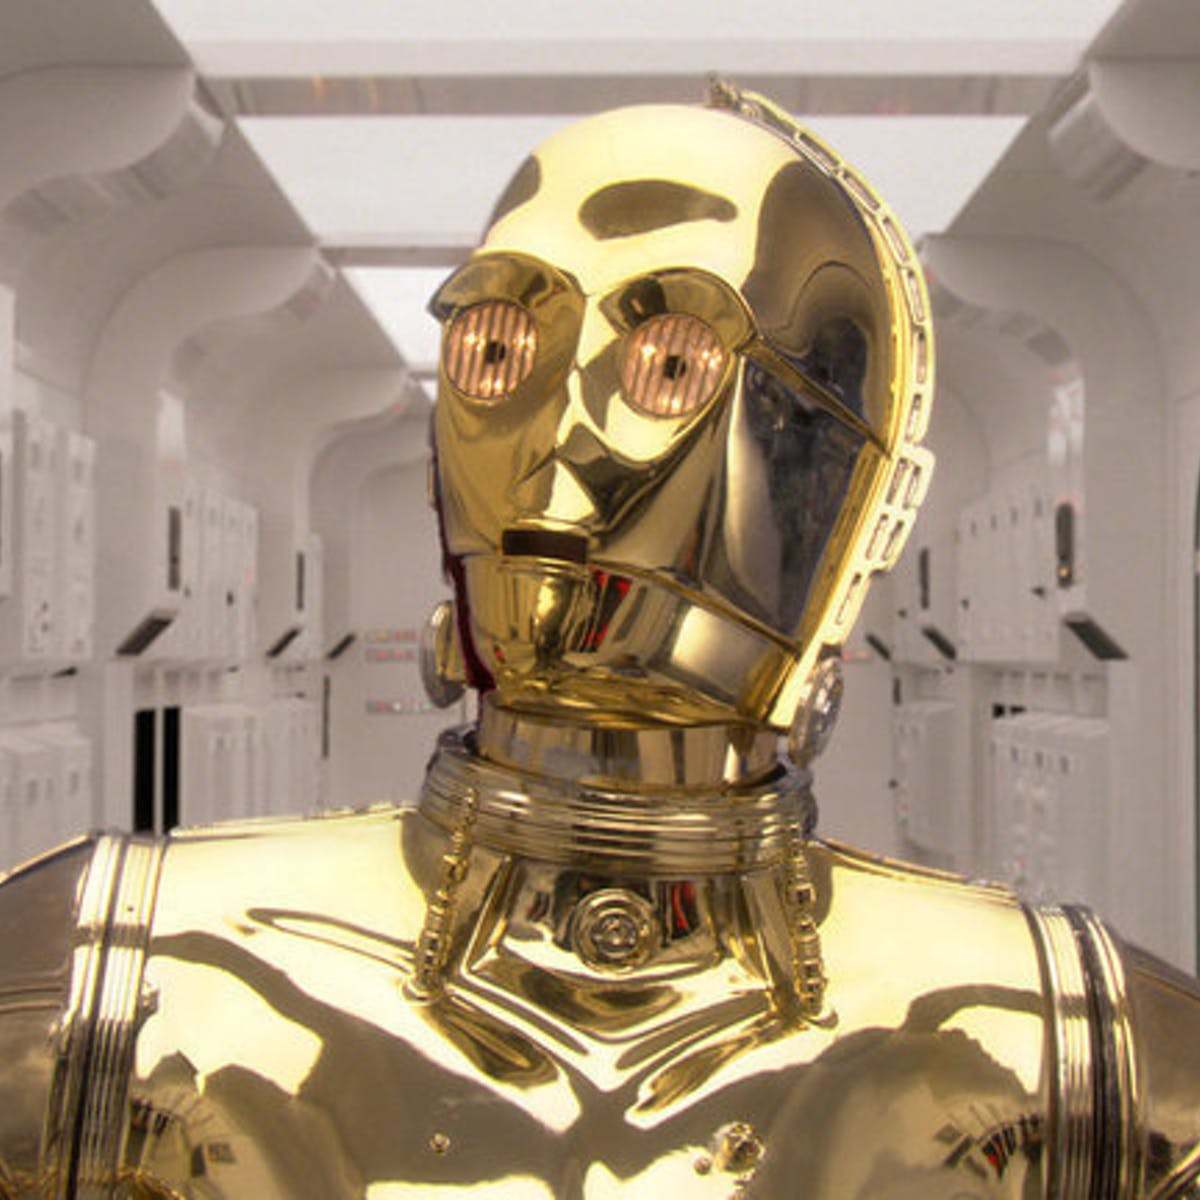 'Star Wars 9' leaks: C-3PO actor reveals a hidden detail from the trailers